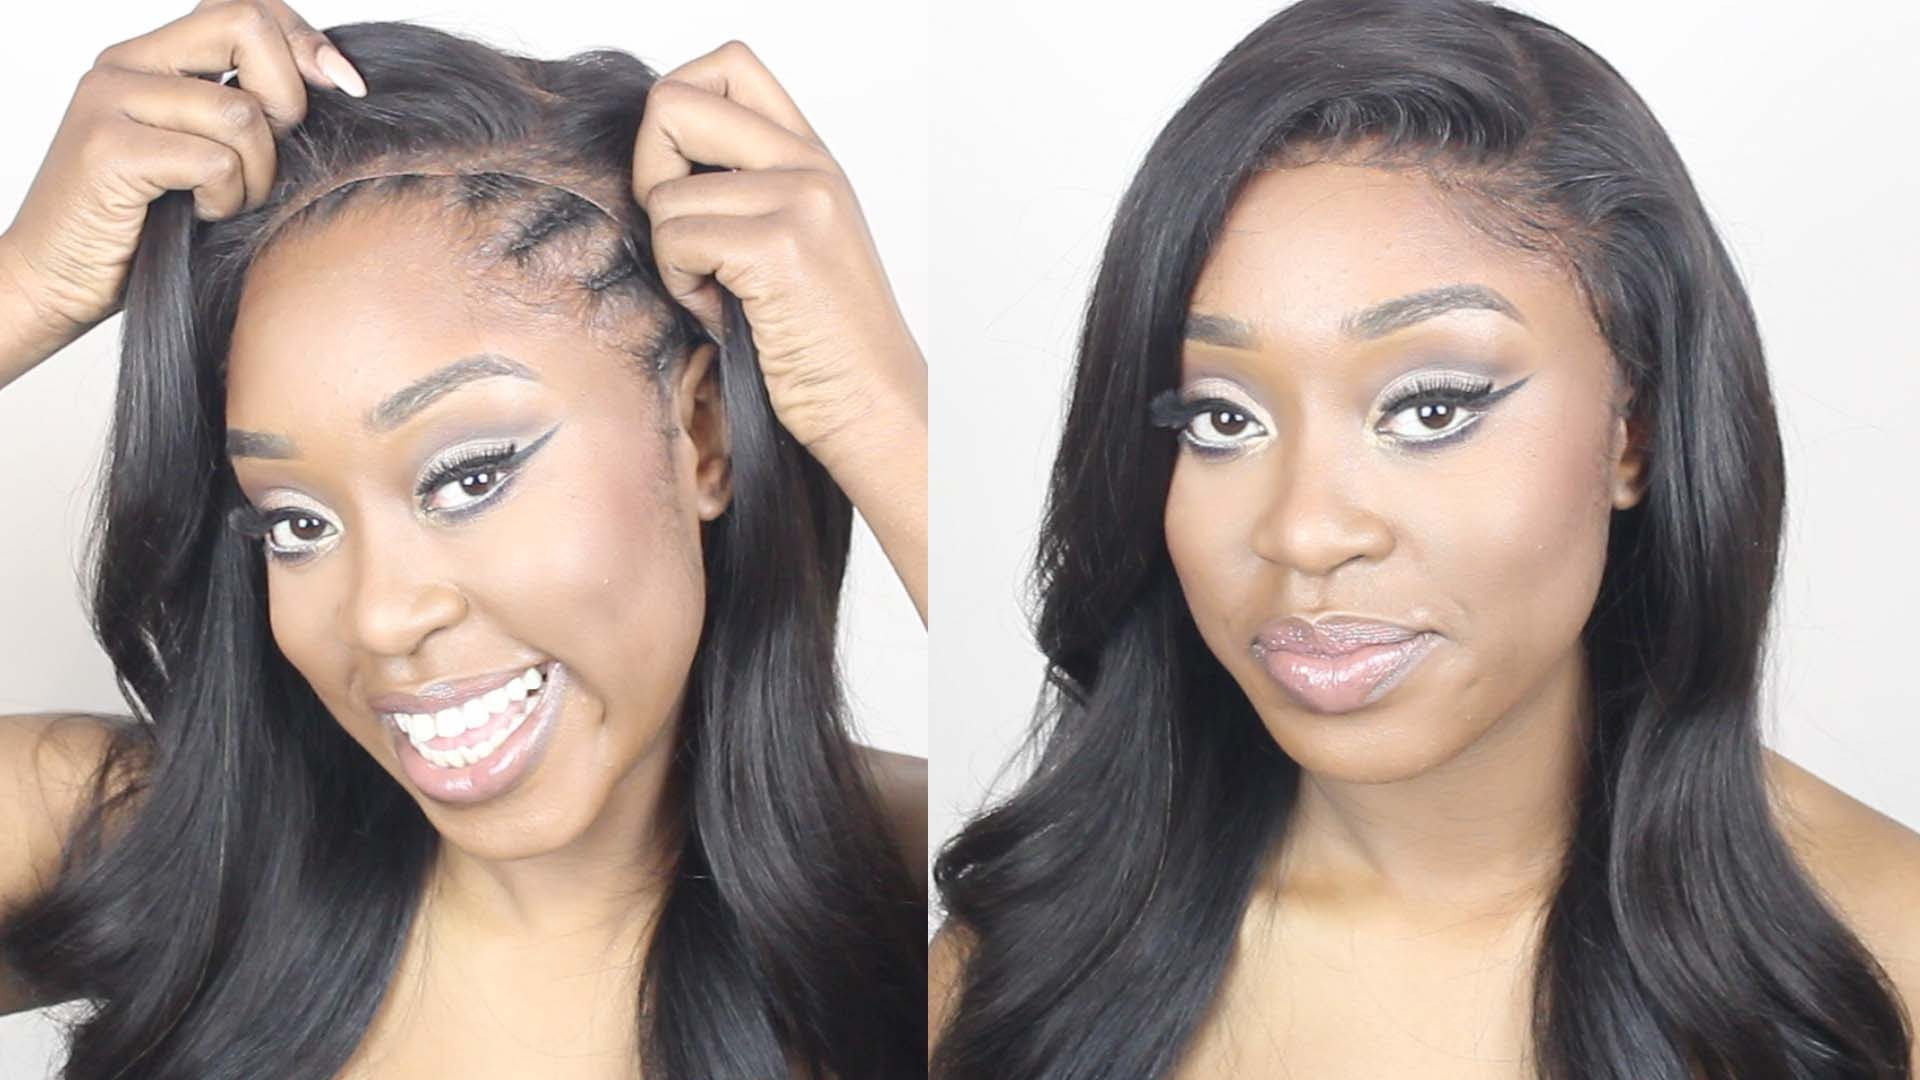 How To Make A Lace Frontal Wig Tutorial No Hair Out No Glue